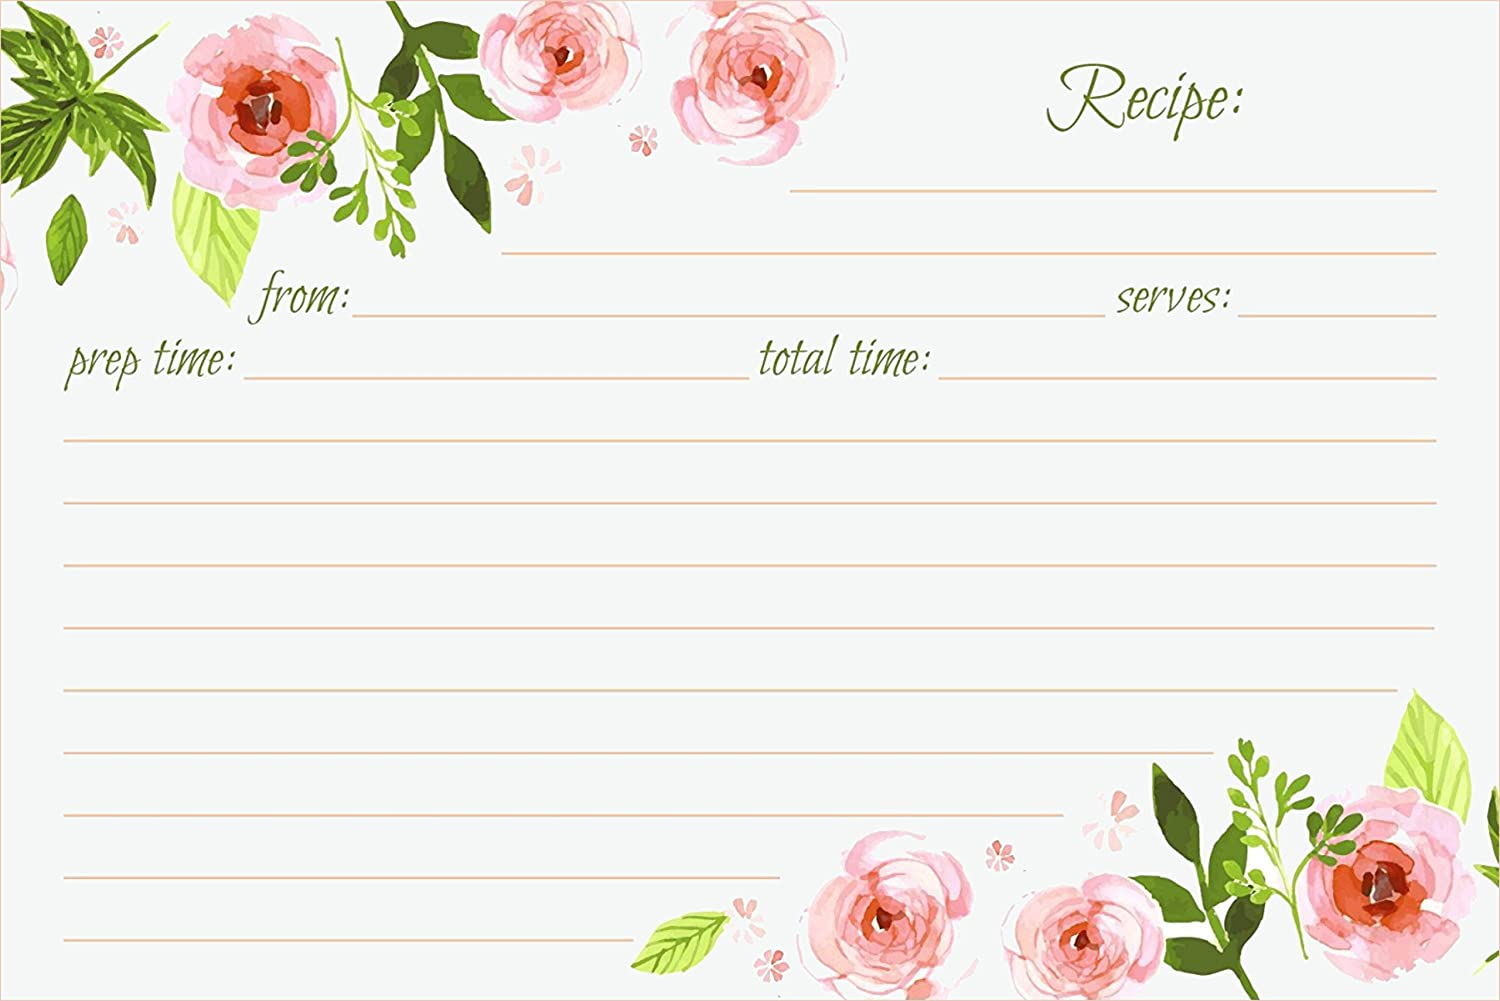 amazon com jot mark recipe cards floral double sided 4x6 50 count